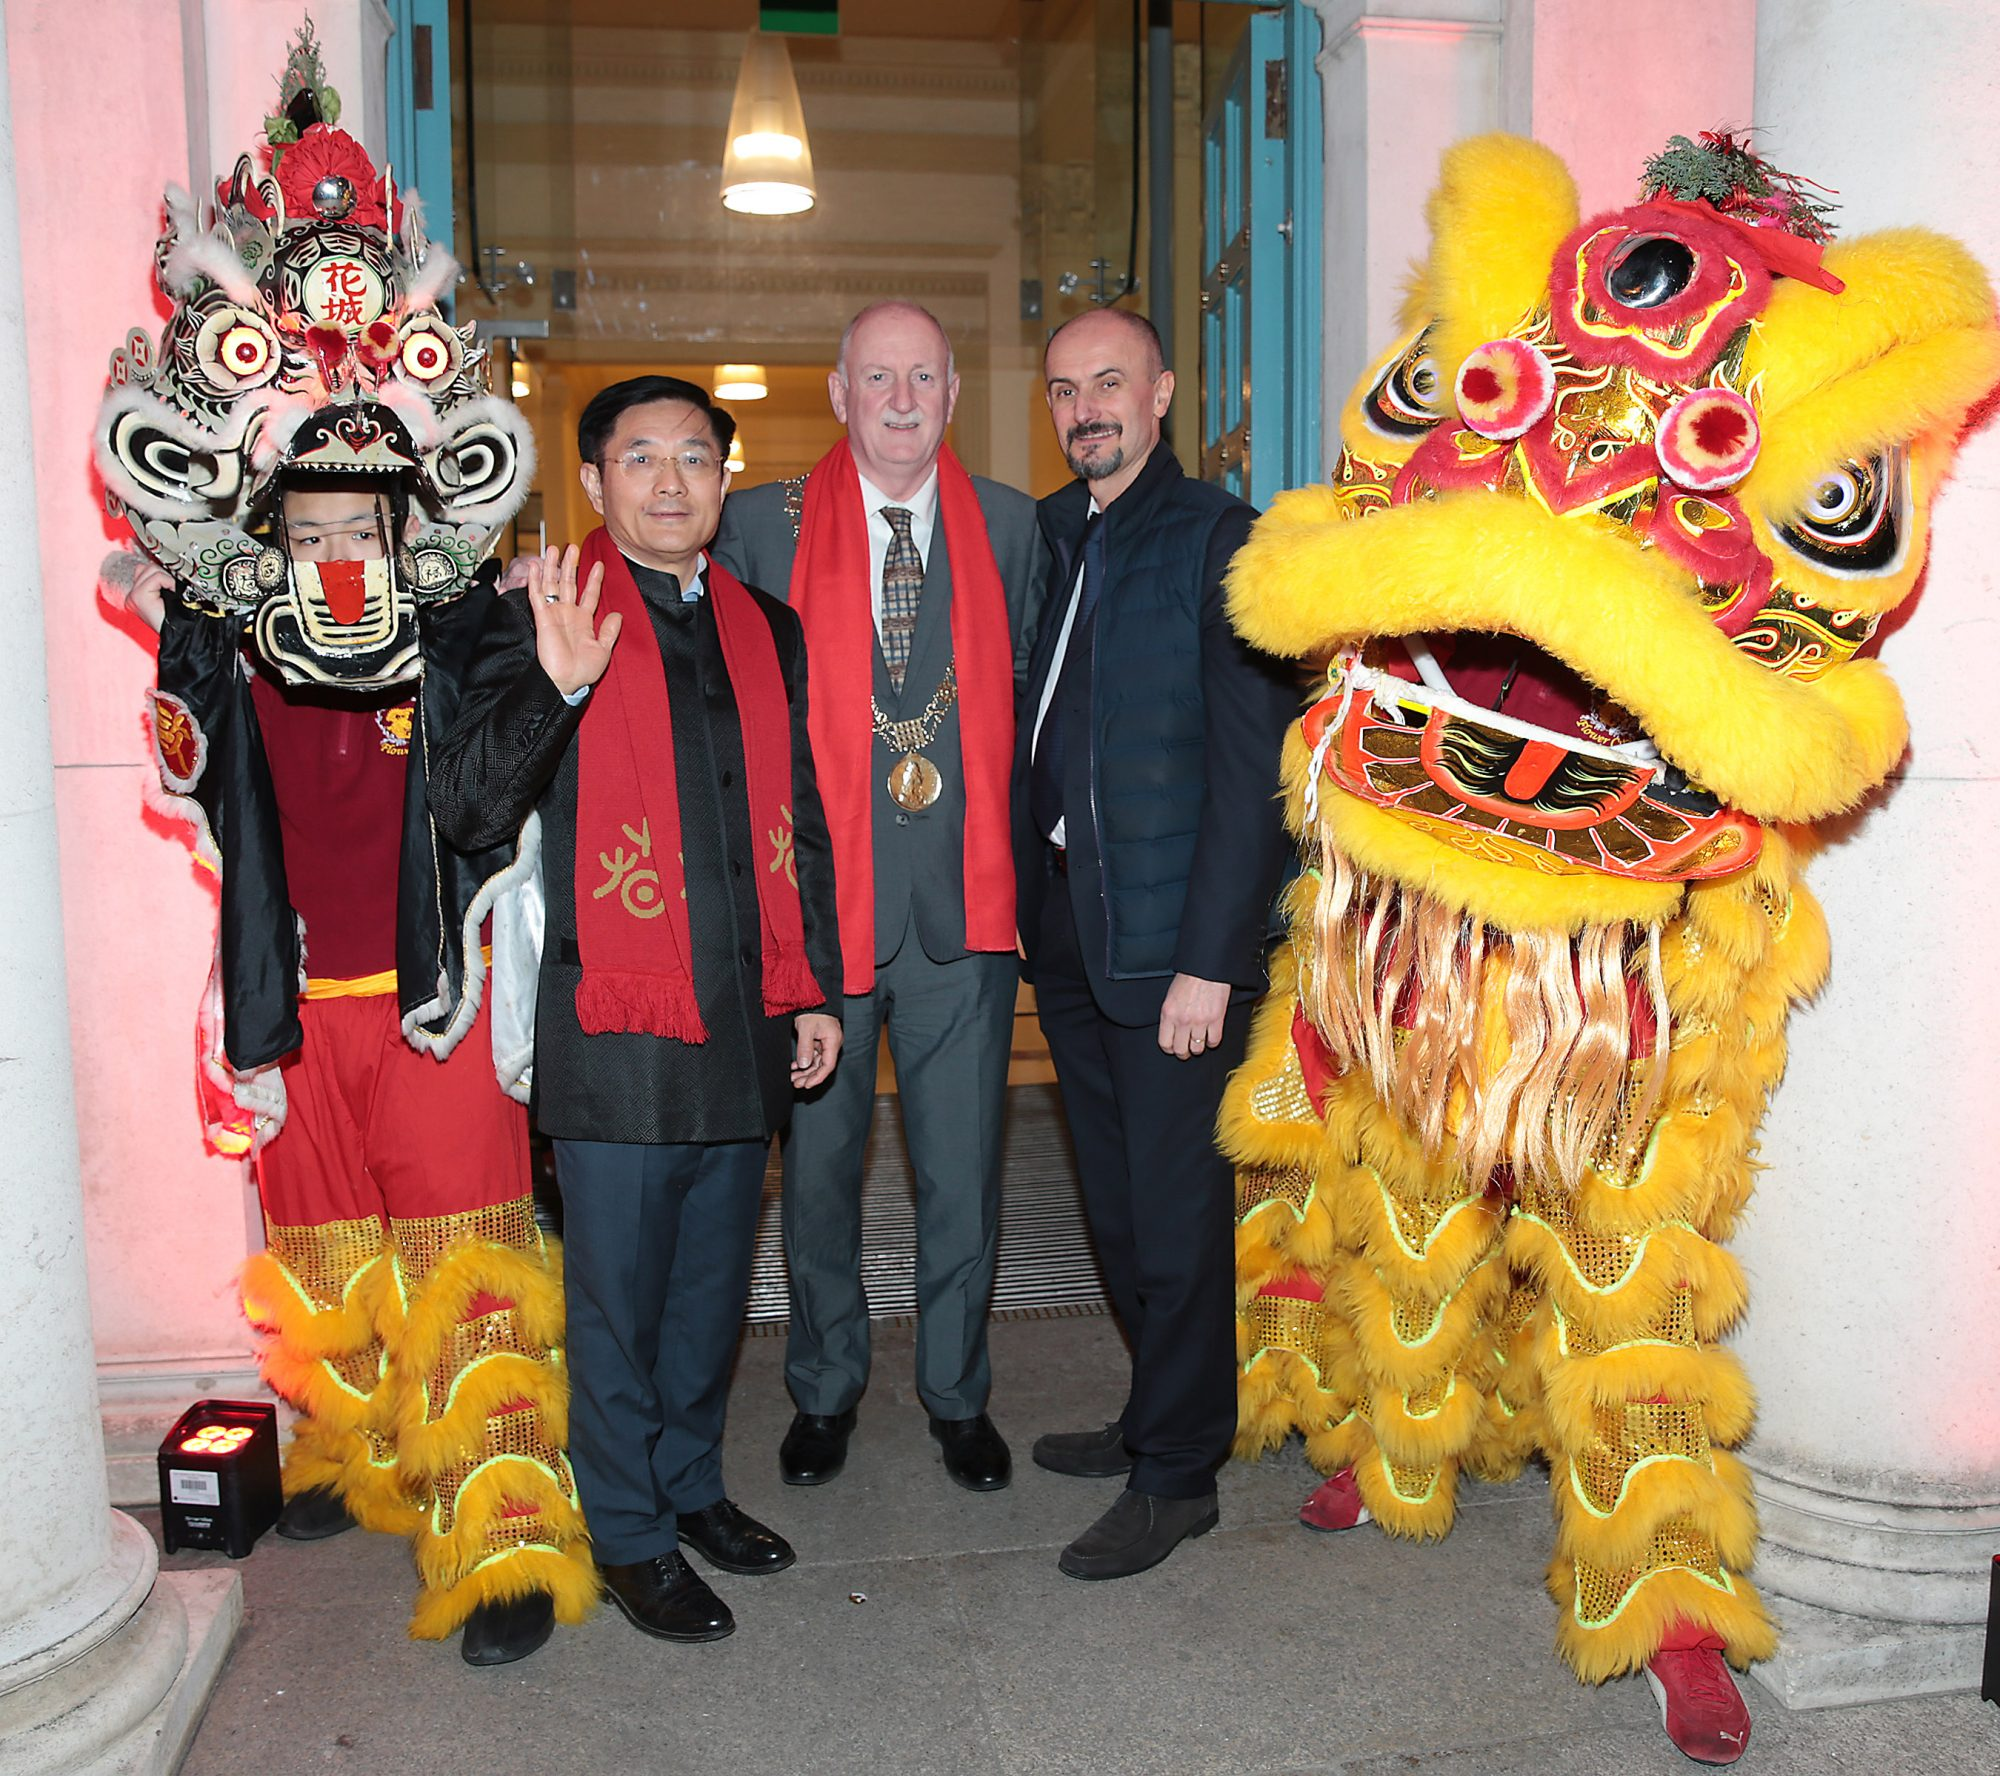 H.E. Dr. Yue Xiaoyong, Chinese Ambassador to Ireland , Lord Mayor of Dublin Nial Ring  and René Frion -Kildare Village  pictured at the official opening event of Dublin Chinese New Year Festival 2019 at The Hugh Lane Gallery sponsored by Kildare Village. Dublin Chinese New Year Festival runs until 17th February for more see www.dublinchinesenewyear.com   DCNYF celebrates the Year of the Pig this year, completing a full cycle of the zodiac for the festival, which has grown to become one of the biggest celebrations of Chinese New Year in Europe. A Dublin City Council initiative, the festival aims to develop and showcase the best of Sino-Hibernian culture in Ireland and is jam-packed with many ticketed and free events for everyone to enjoy.  Picture Brian McEvoy